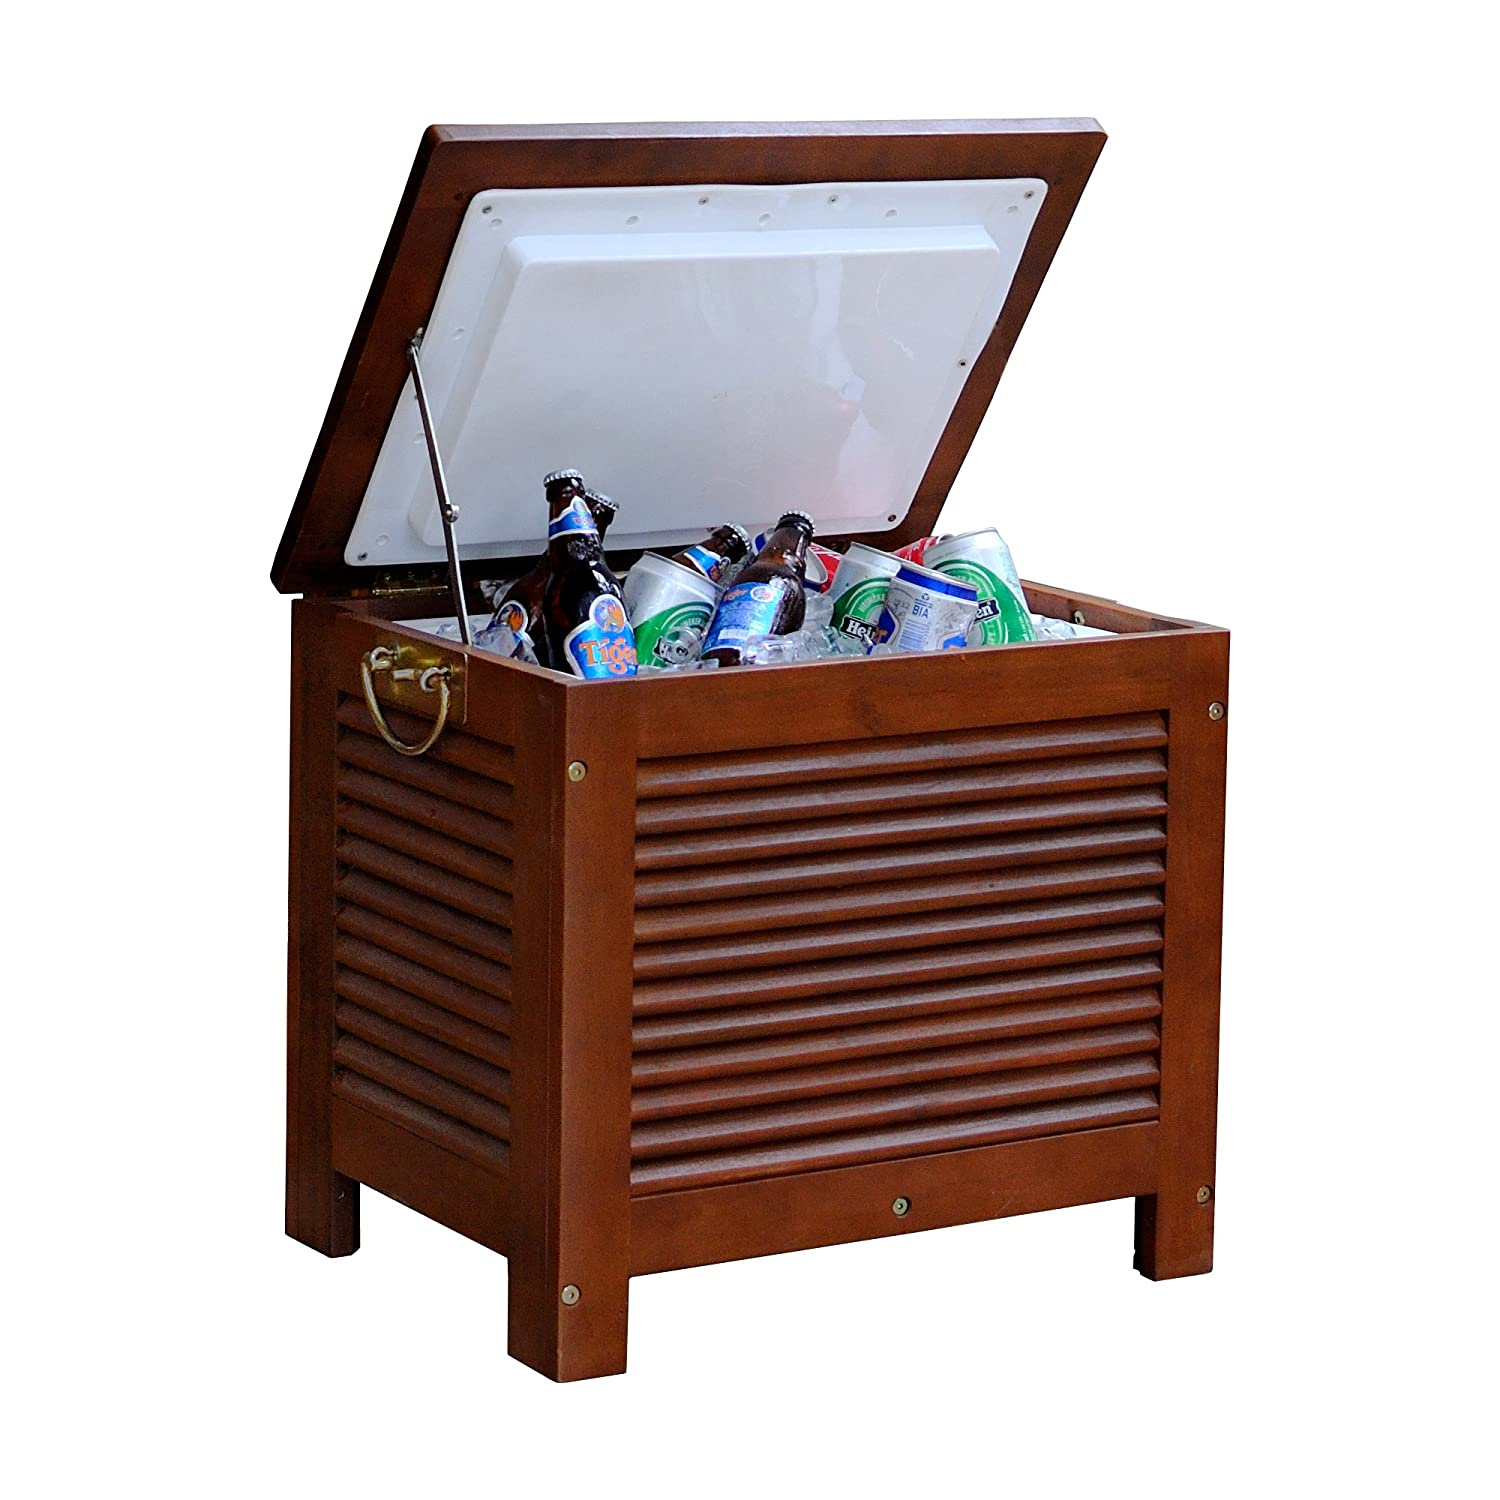 Amazon.com : Merry Garden MPG PC01 Wooden Patio Cooler : Wood Ice Chest :  Garden U0026 Outdoor